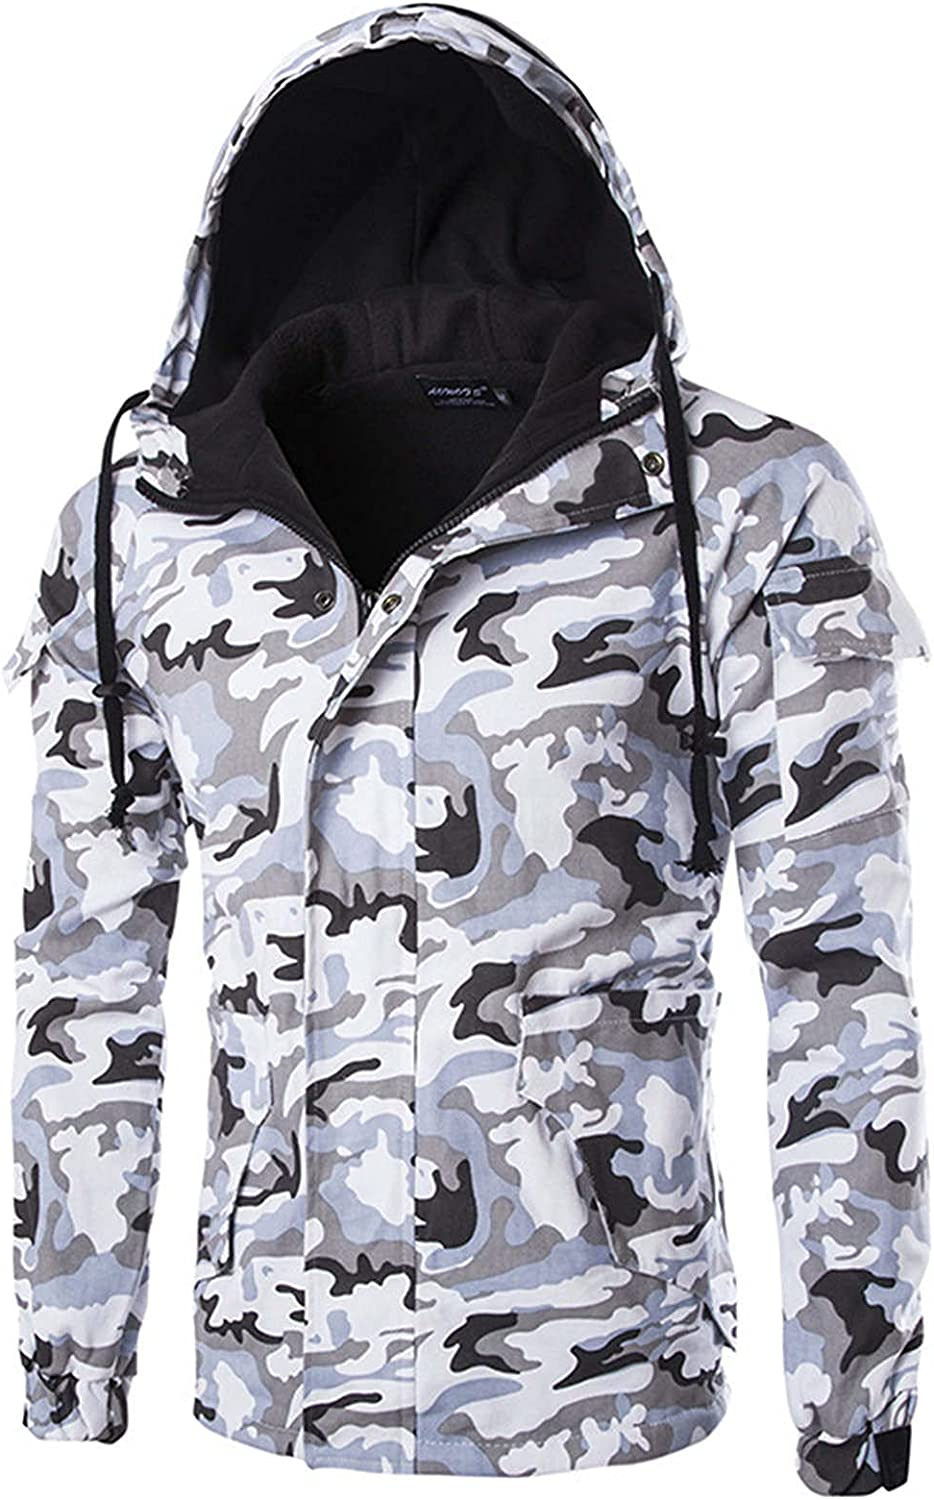 XXBR Camo Hooded Coat for Mens, Fall Winter Zipper Button Casual Warm Thick Sweatshirts Sports Camouflage Jackets